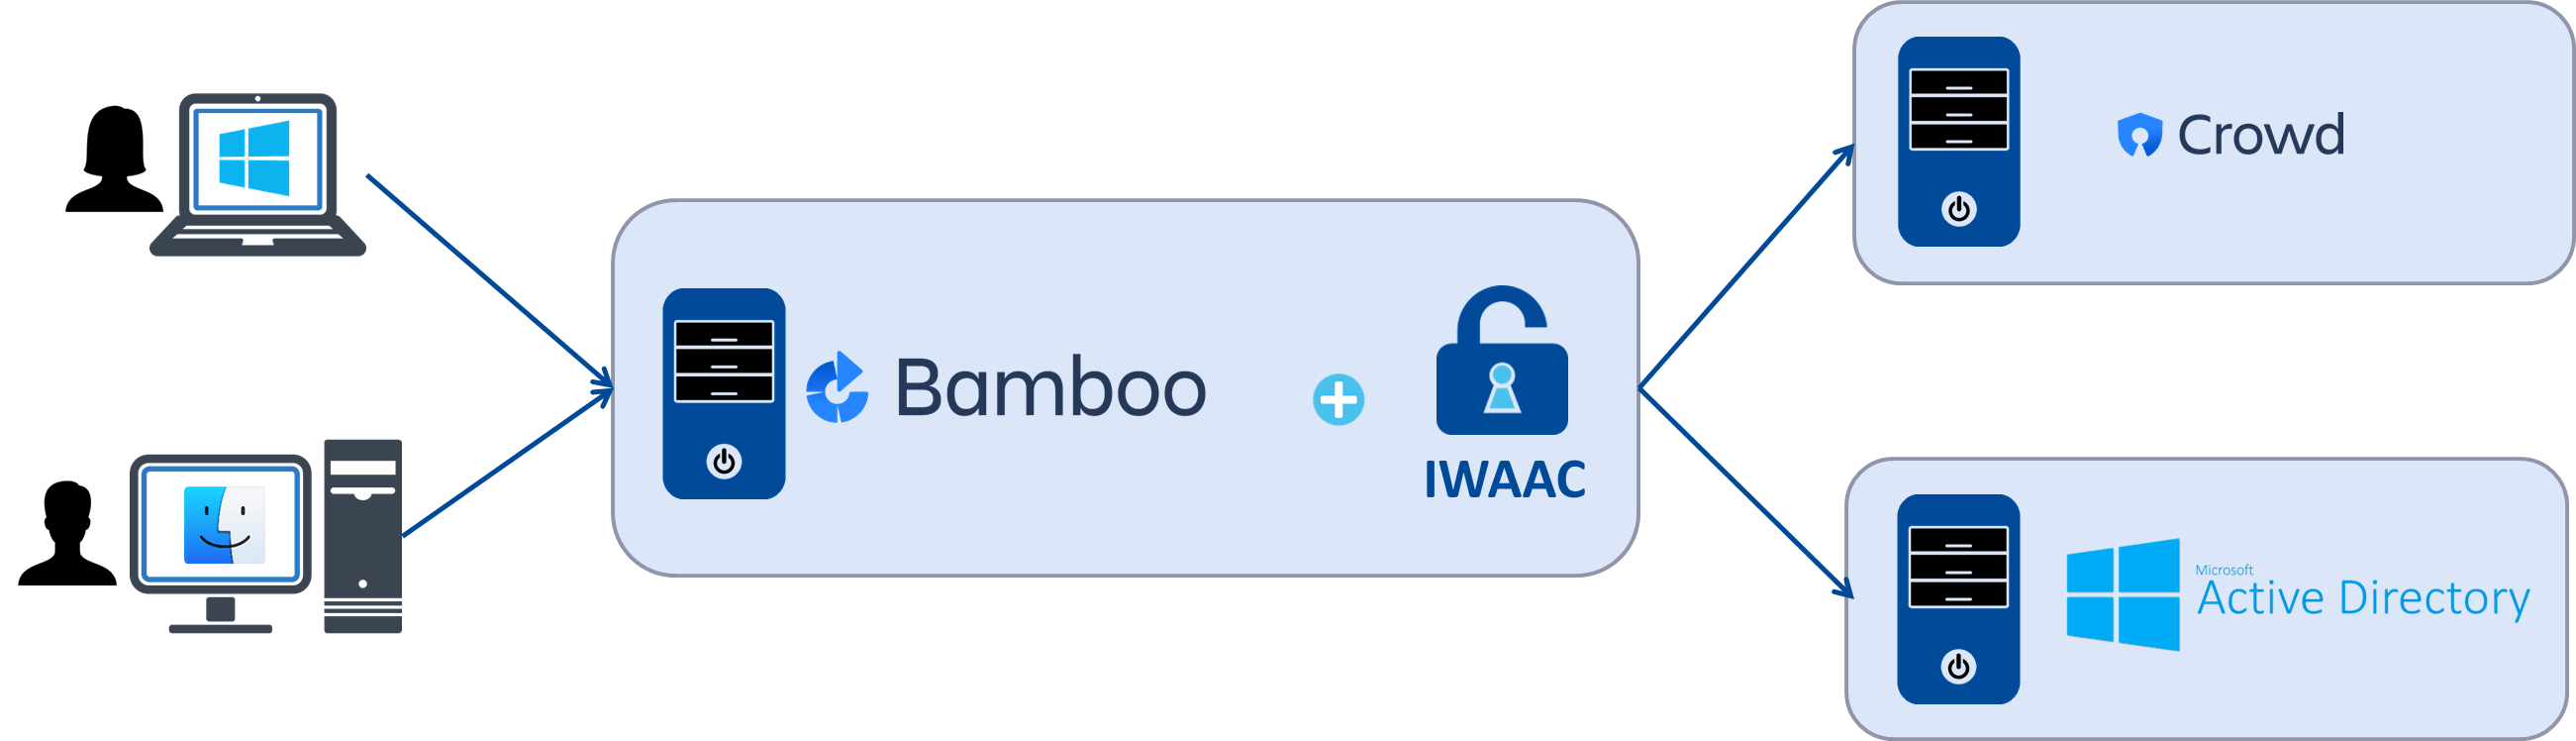 IWAAC for Bamboo Overview